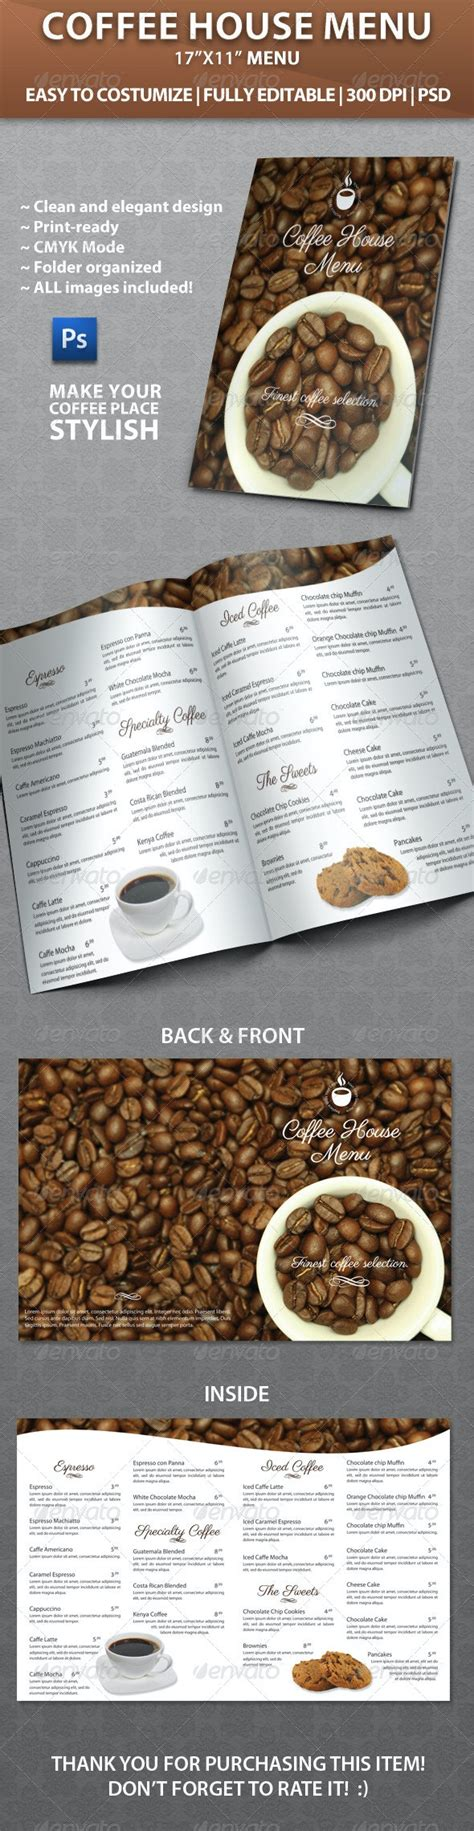 Beyond the flavours and comforts of home, power coffeehouse serves as a gathering for hearts and minds. Elegant Coffee House Menu by VMLab | GraphicRiver